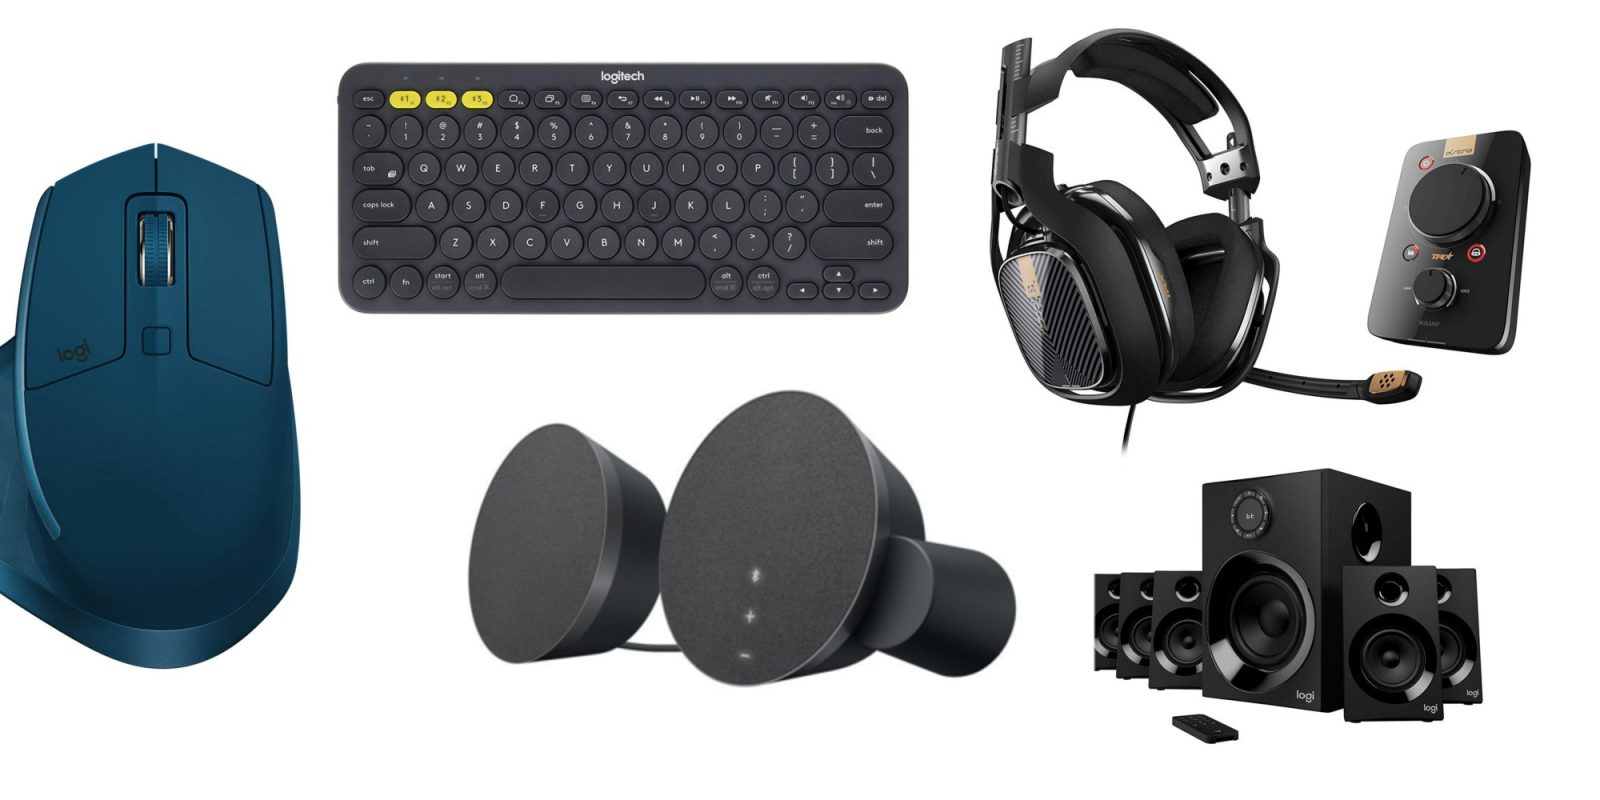 Thursday deals: Logitech Gold Box from $24, iPad Air $50 off, Apple Watch Band sale